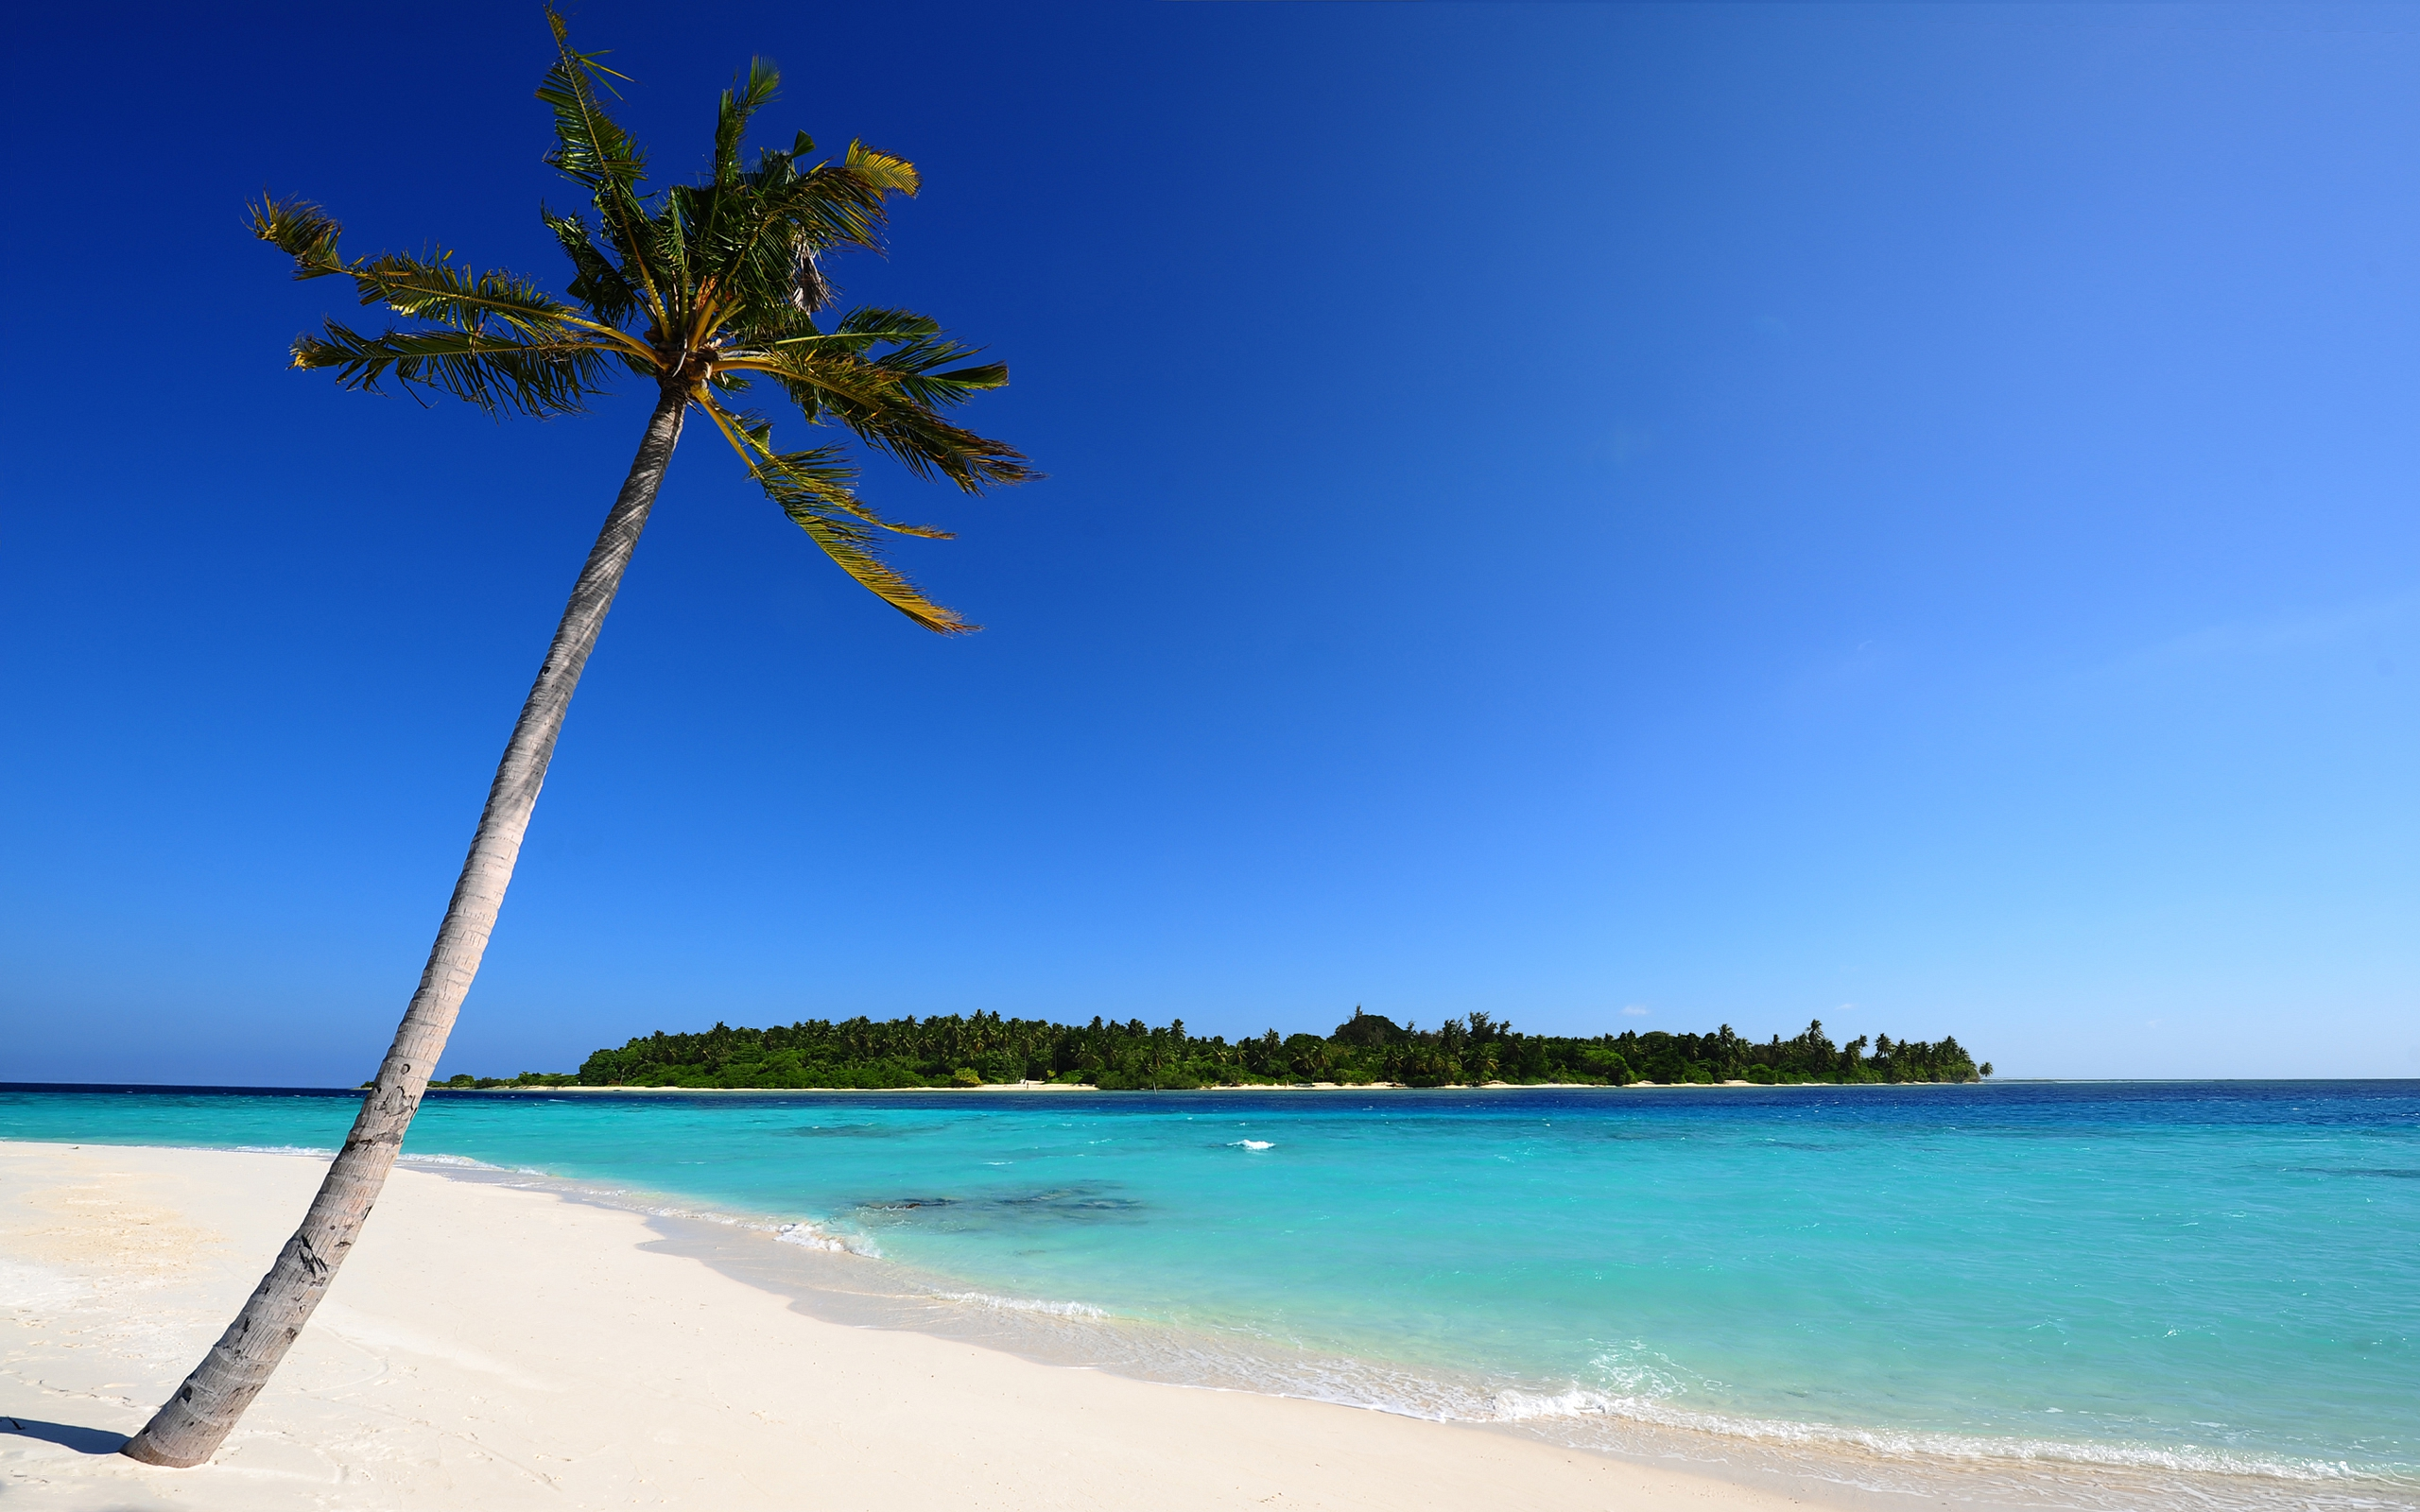 Island Background Pictures For Refreshing Mind Island background 2560x1600